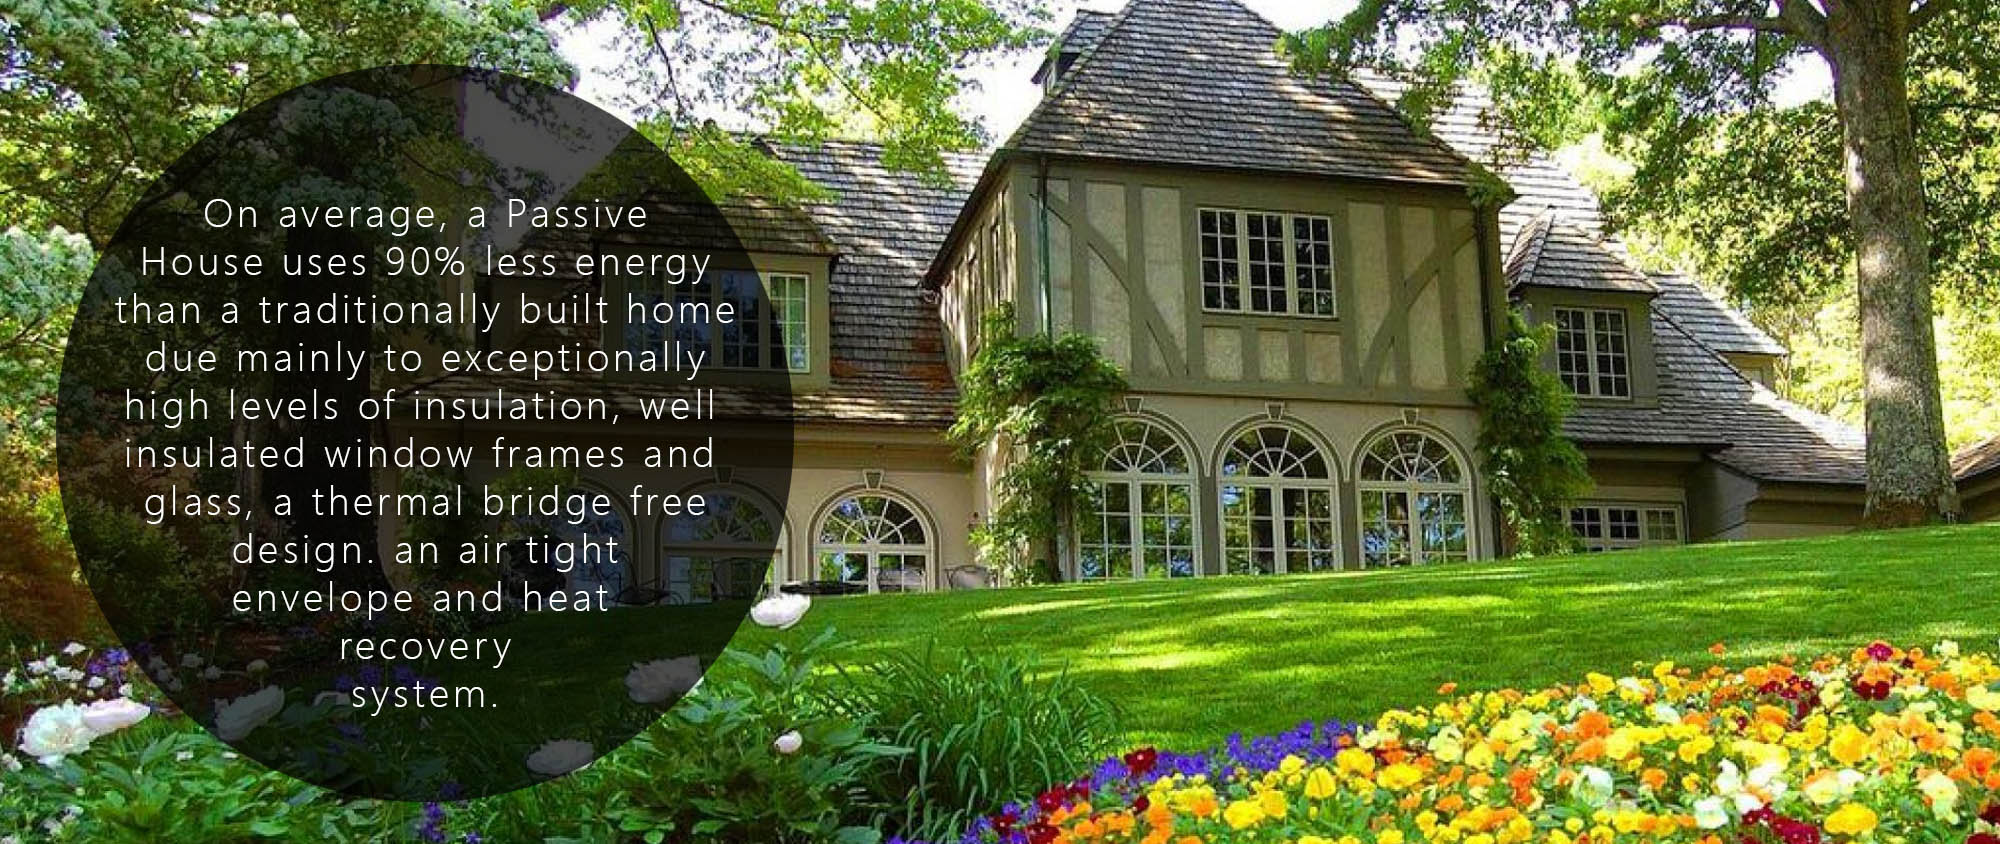 what is a passive house - Passive Home Builder Gambrick